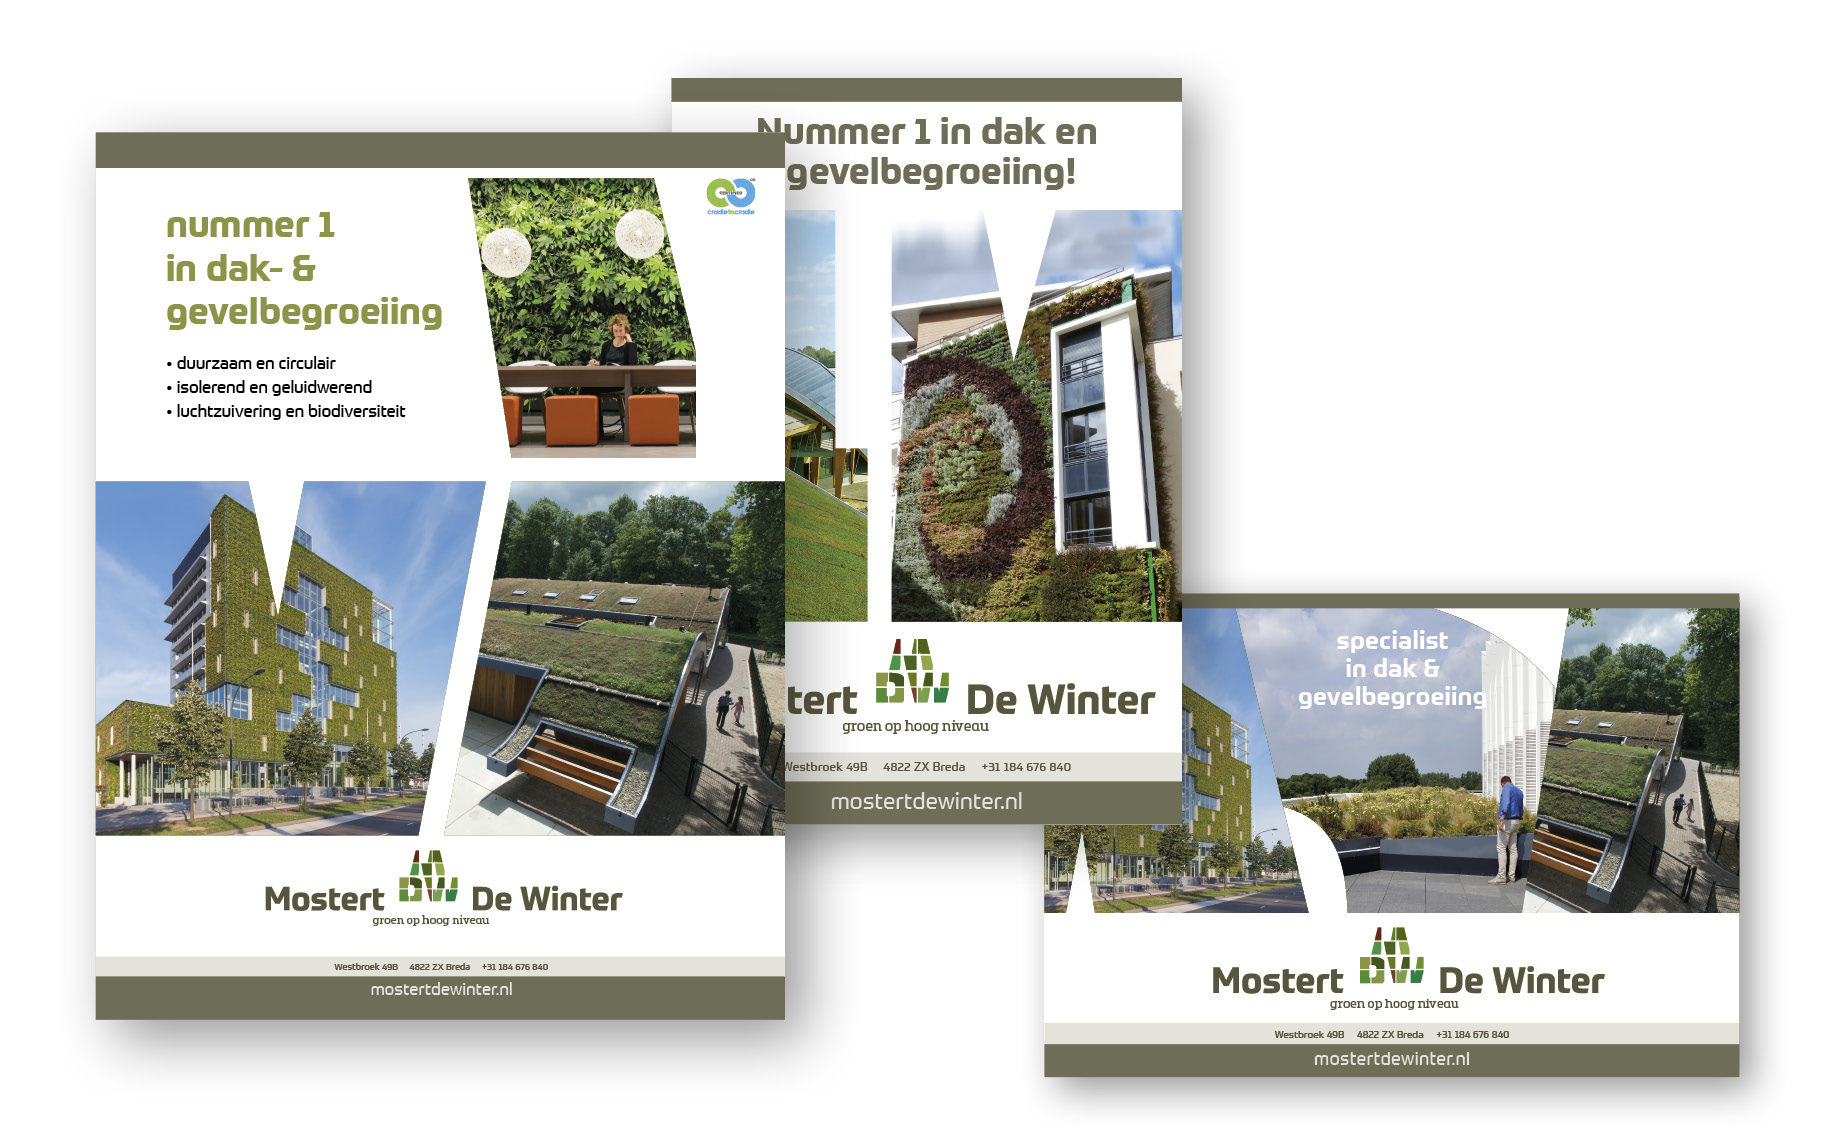 advertenties-mostert-de-winter-verschillende-formaten